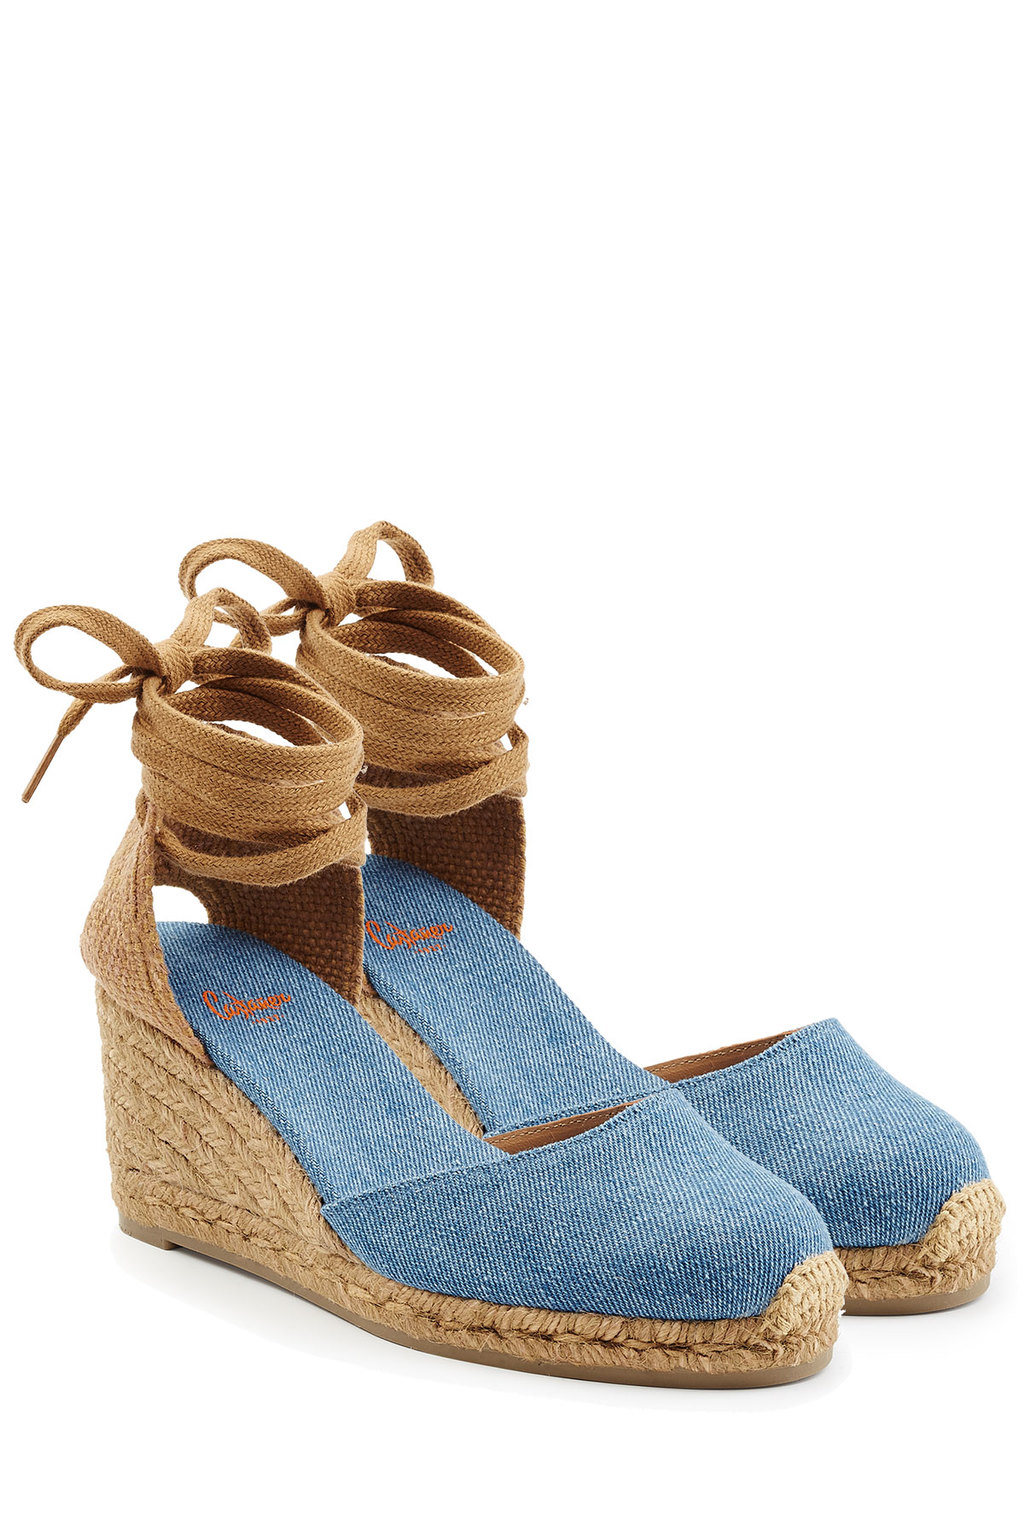 Espadrille Wedges Blue - predominant colour: denim; secondary colour: camel; occasions: casual, holiday; material: fabric; heel height: high; ankle detail: ankle tie; heel: wedge; toe: round toe; finish: plain; pattern: colourblock; shoe detail: platform; style: espadrilles; season: s/s 2016; wardrobe: highlight